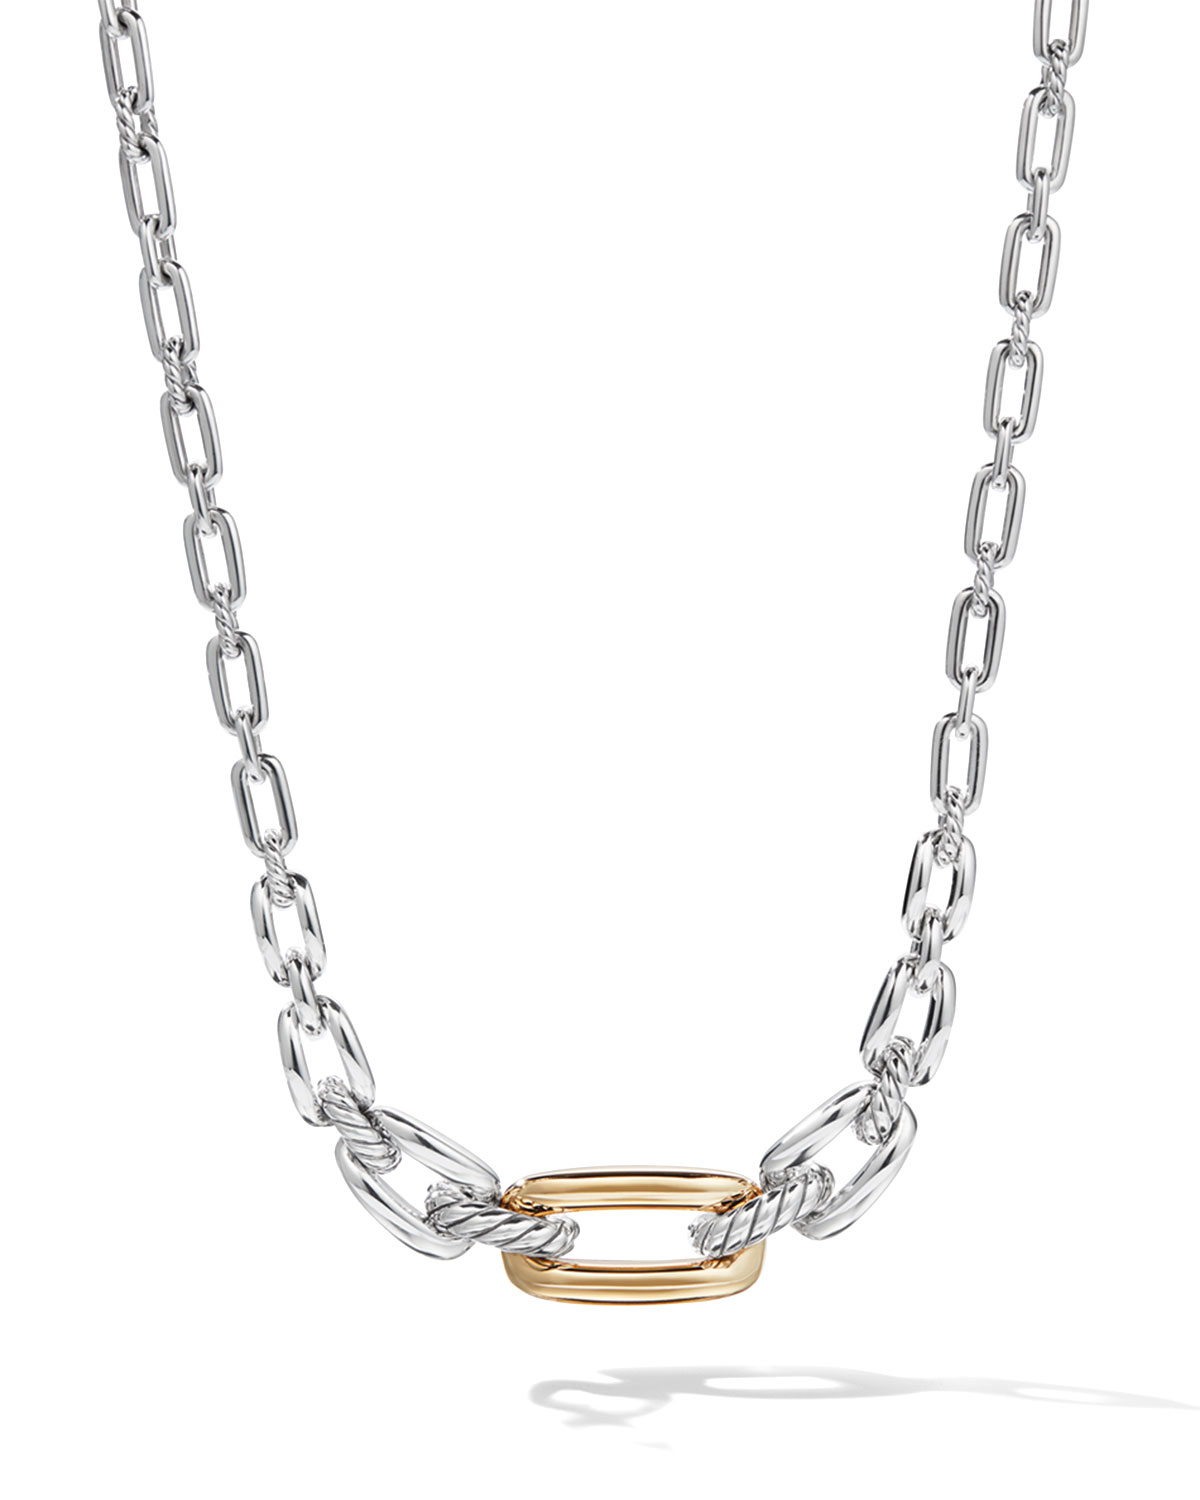 ad5b3ab8048db David Yurman Wellesley Short Silver Link Necklace w  18k Gold ...